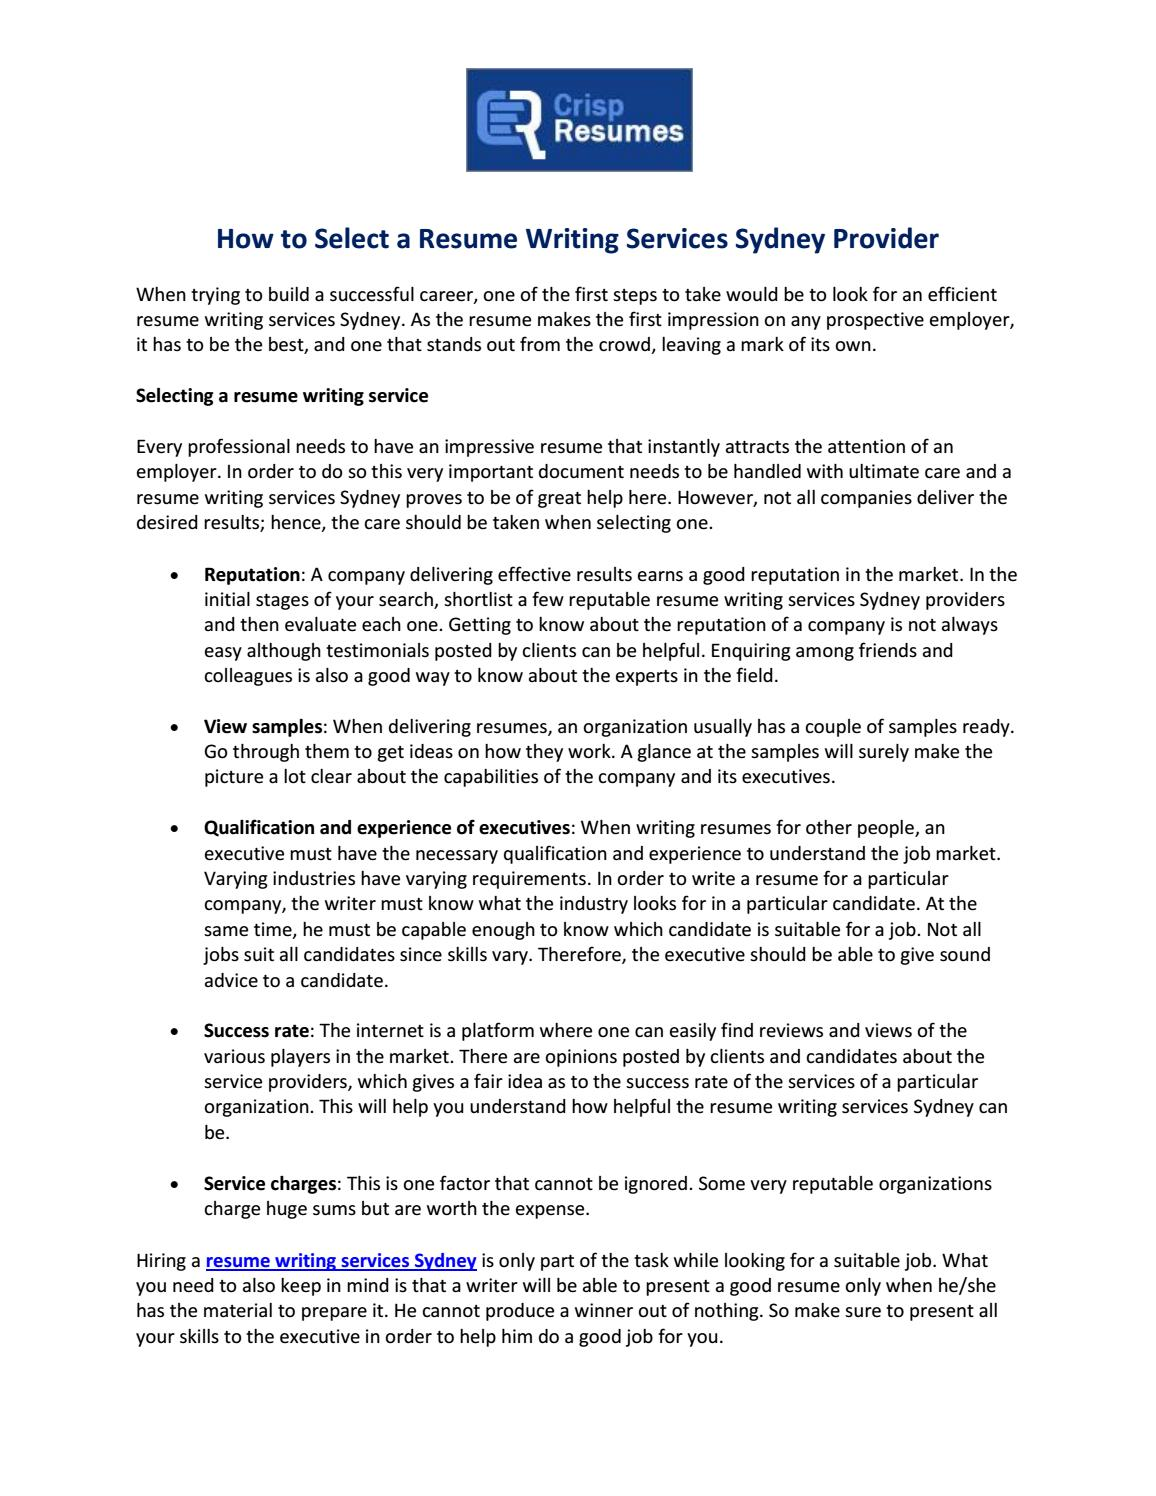 how to select a resume writing services sydney provider by crisp